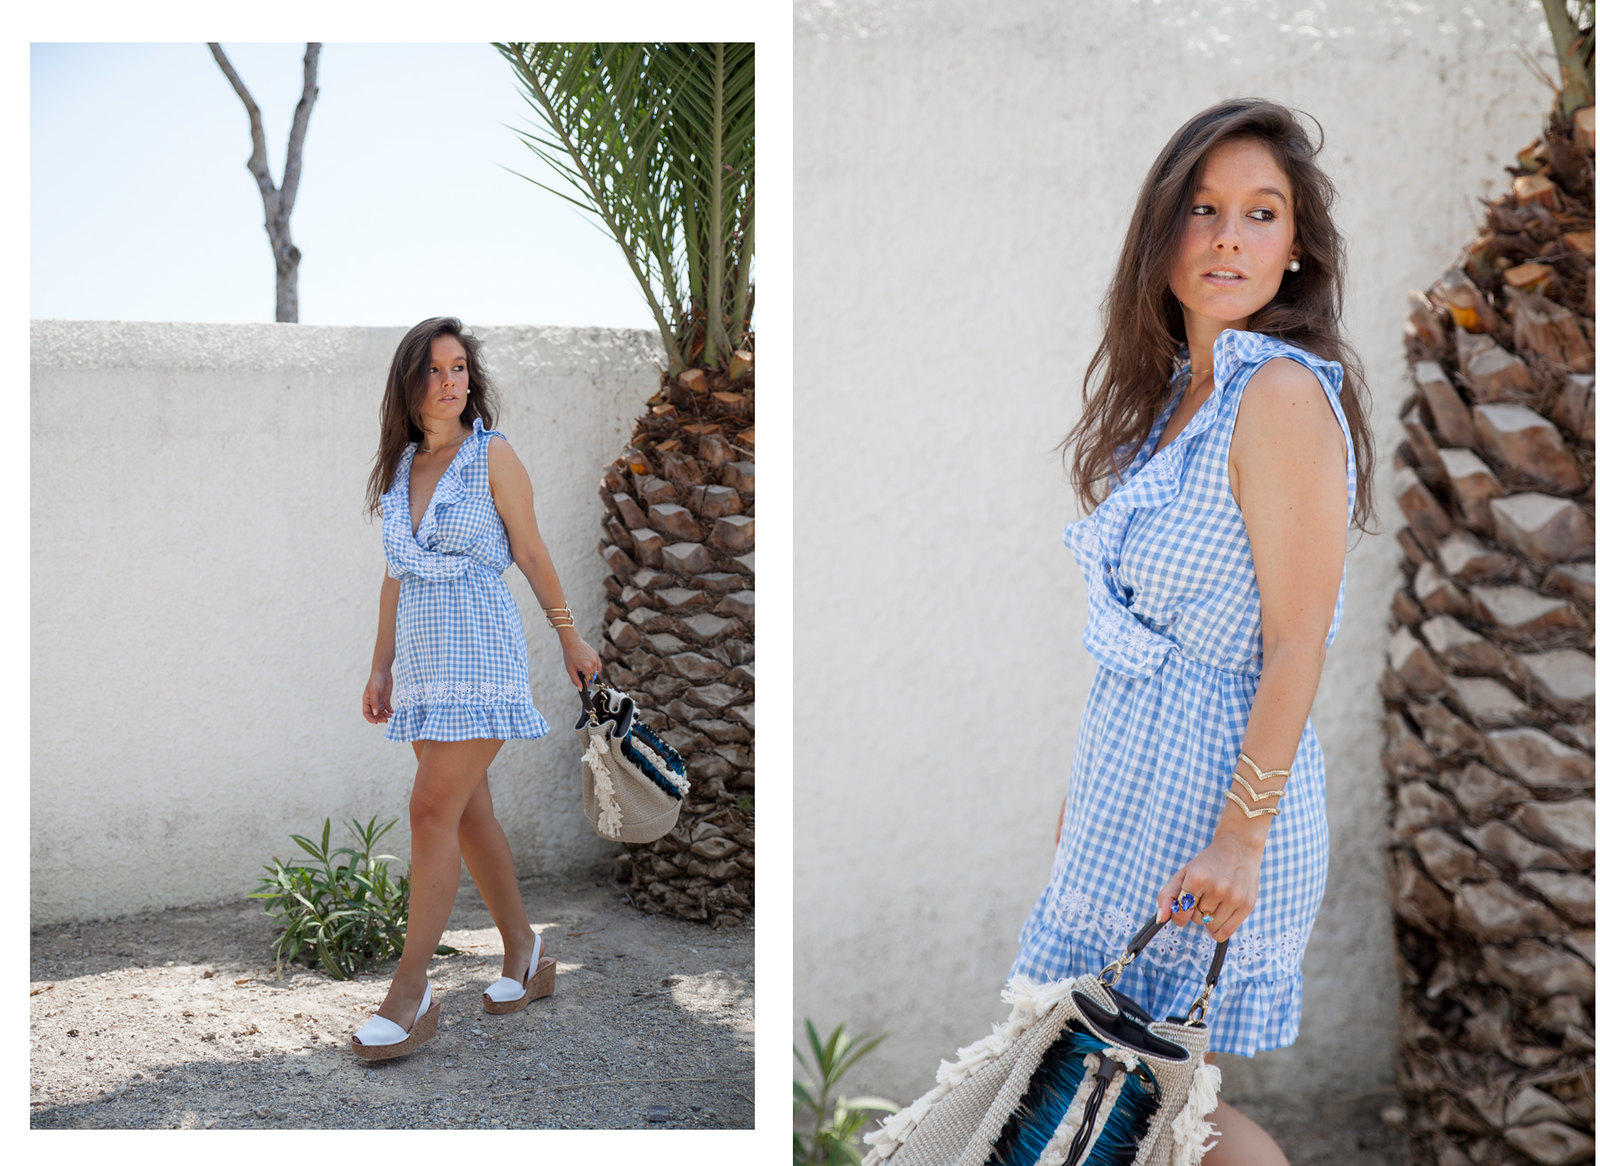 04_Revolve_dress_tularosa_gingham_style_outfit_theguestgirl_influencer_barcelona_spain_summer_look